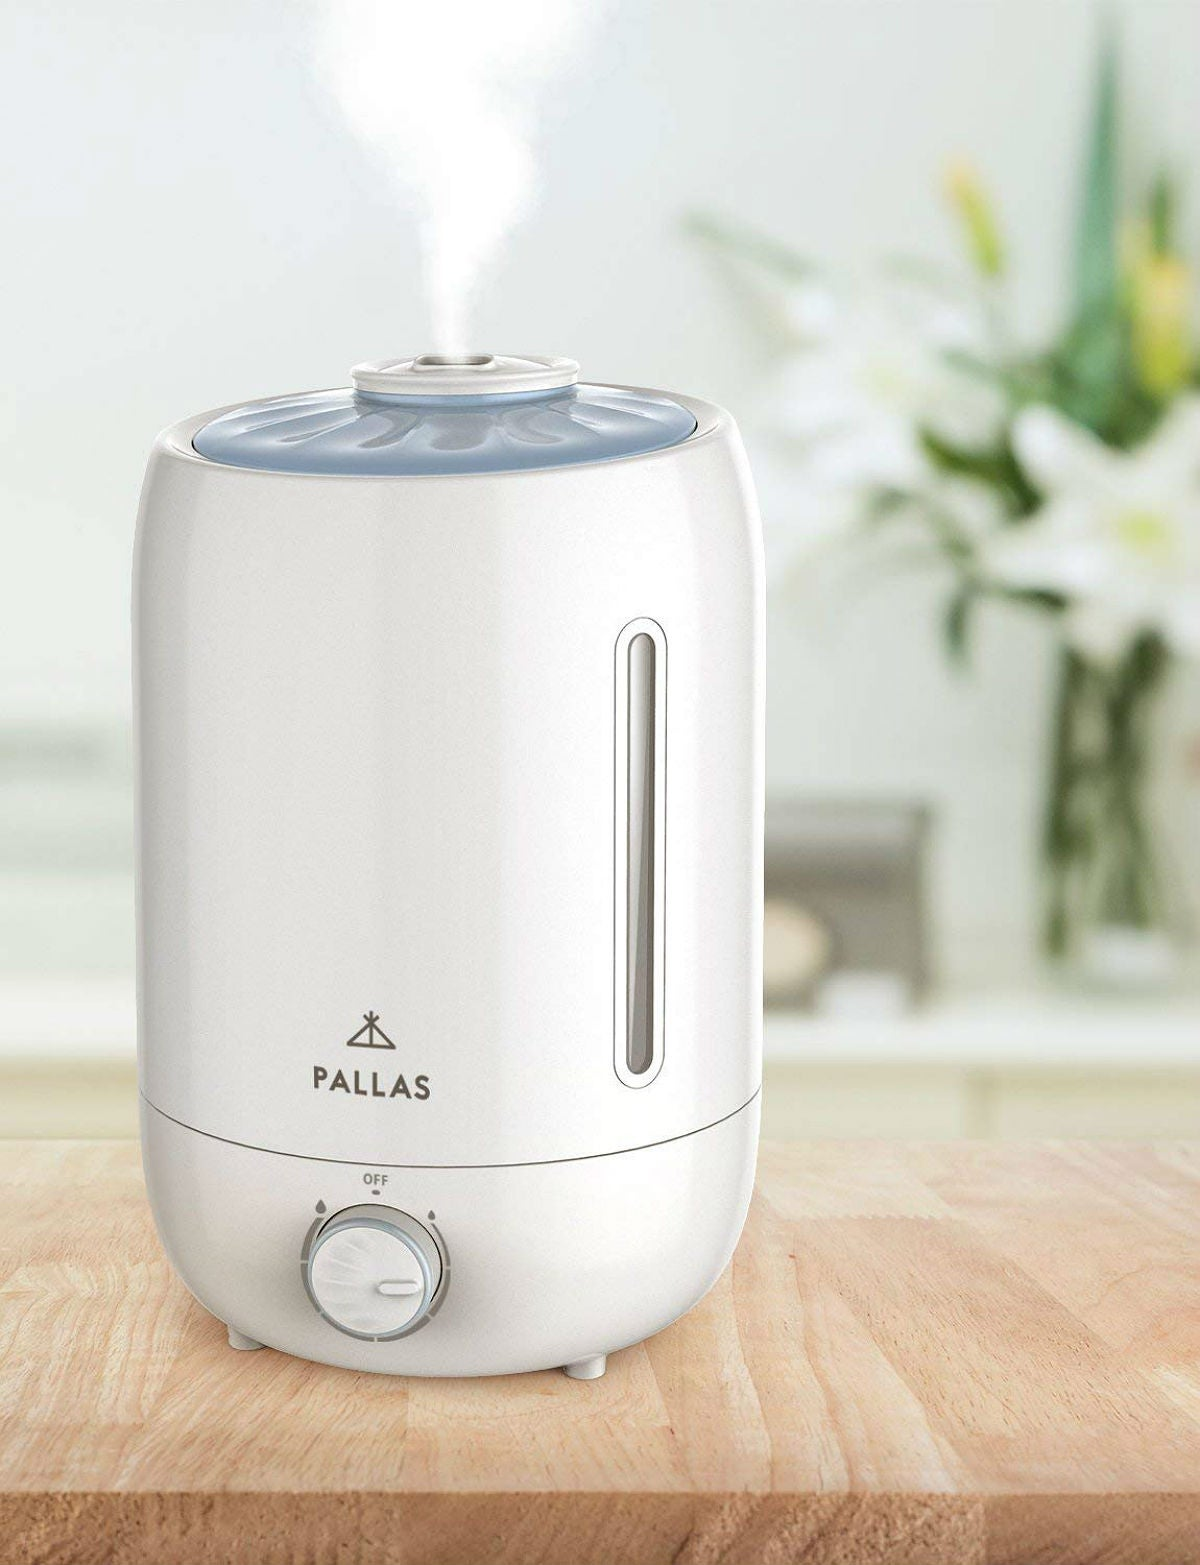 The Best Room Humidifier: Pallas